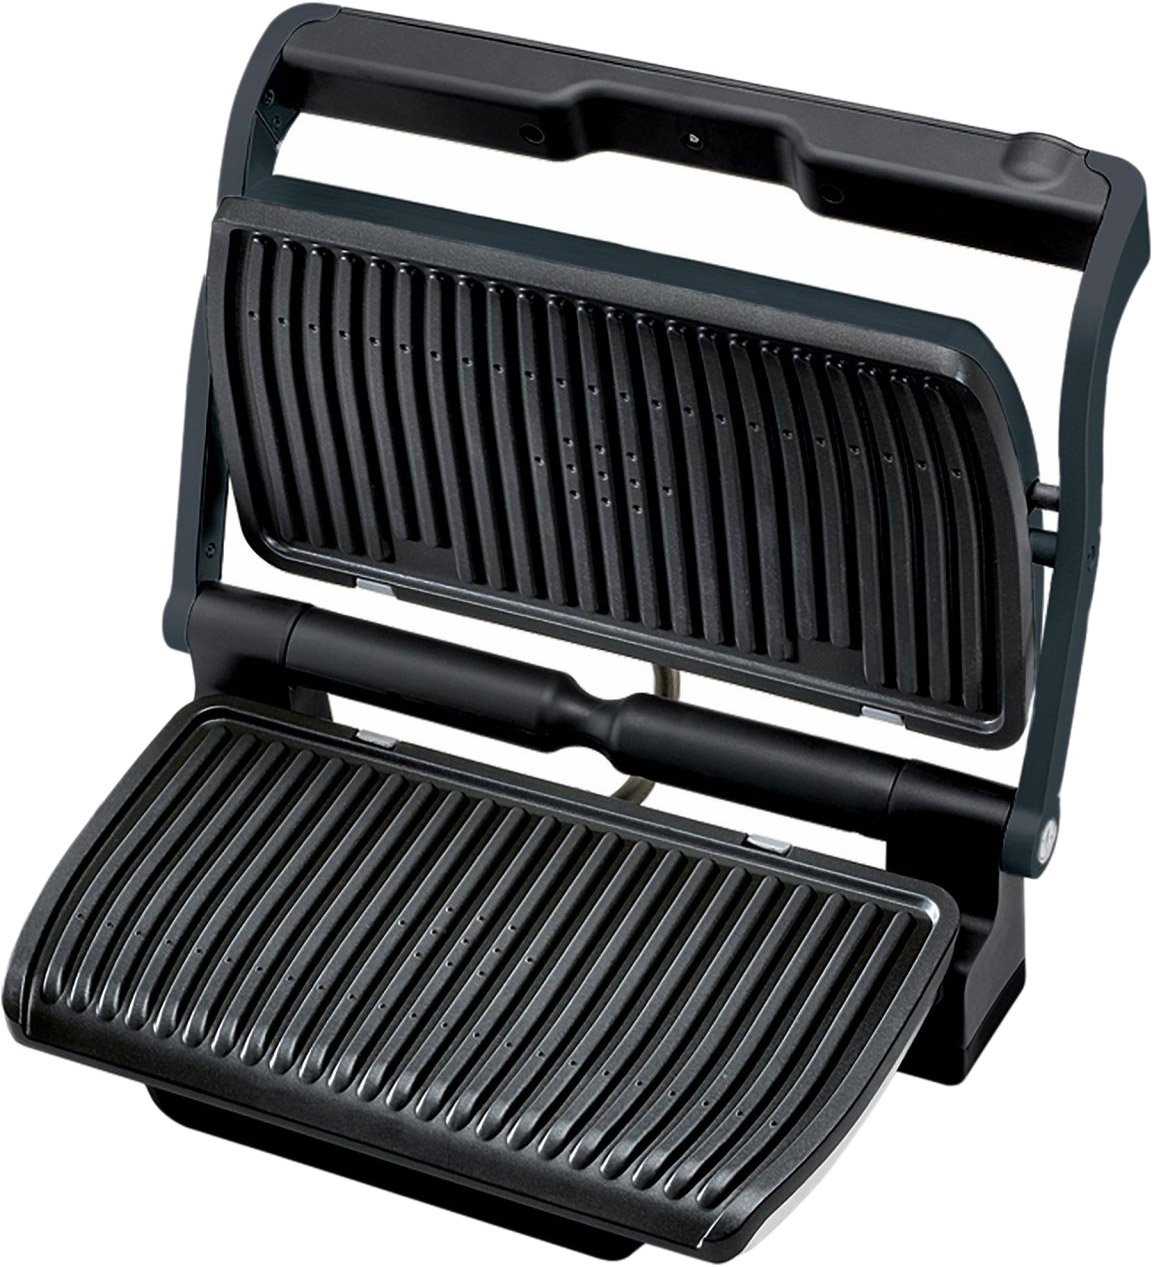 Tefal Optigrill+ XL GC722D34